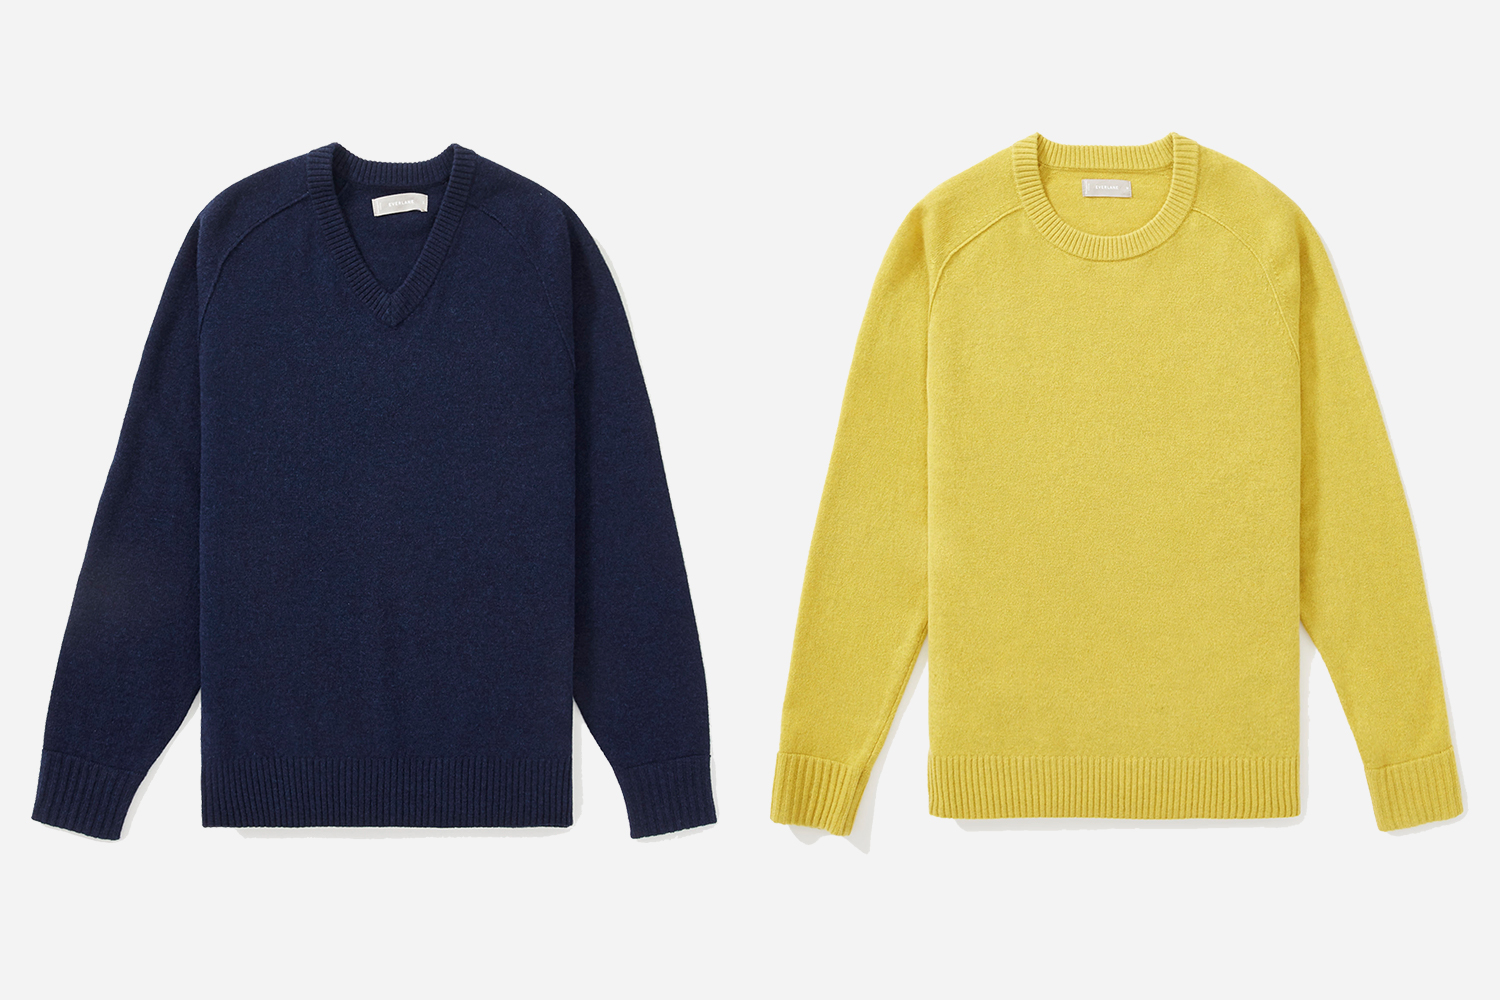 Everlane ReCashmere Recycled Cashmere Sweaters